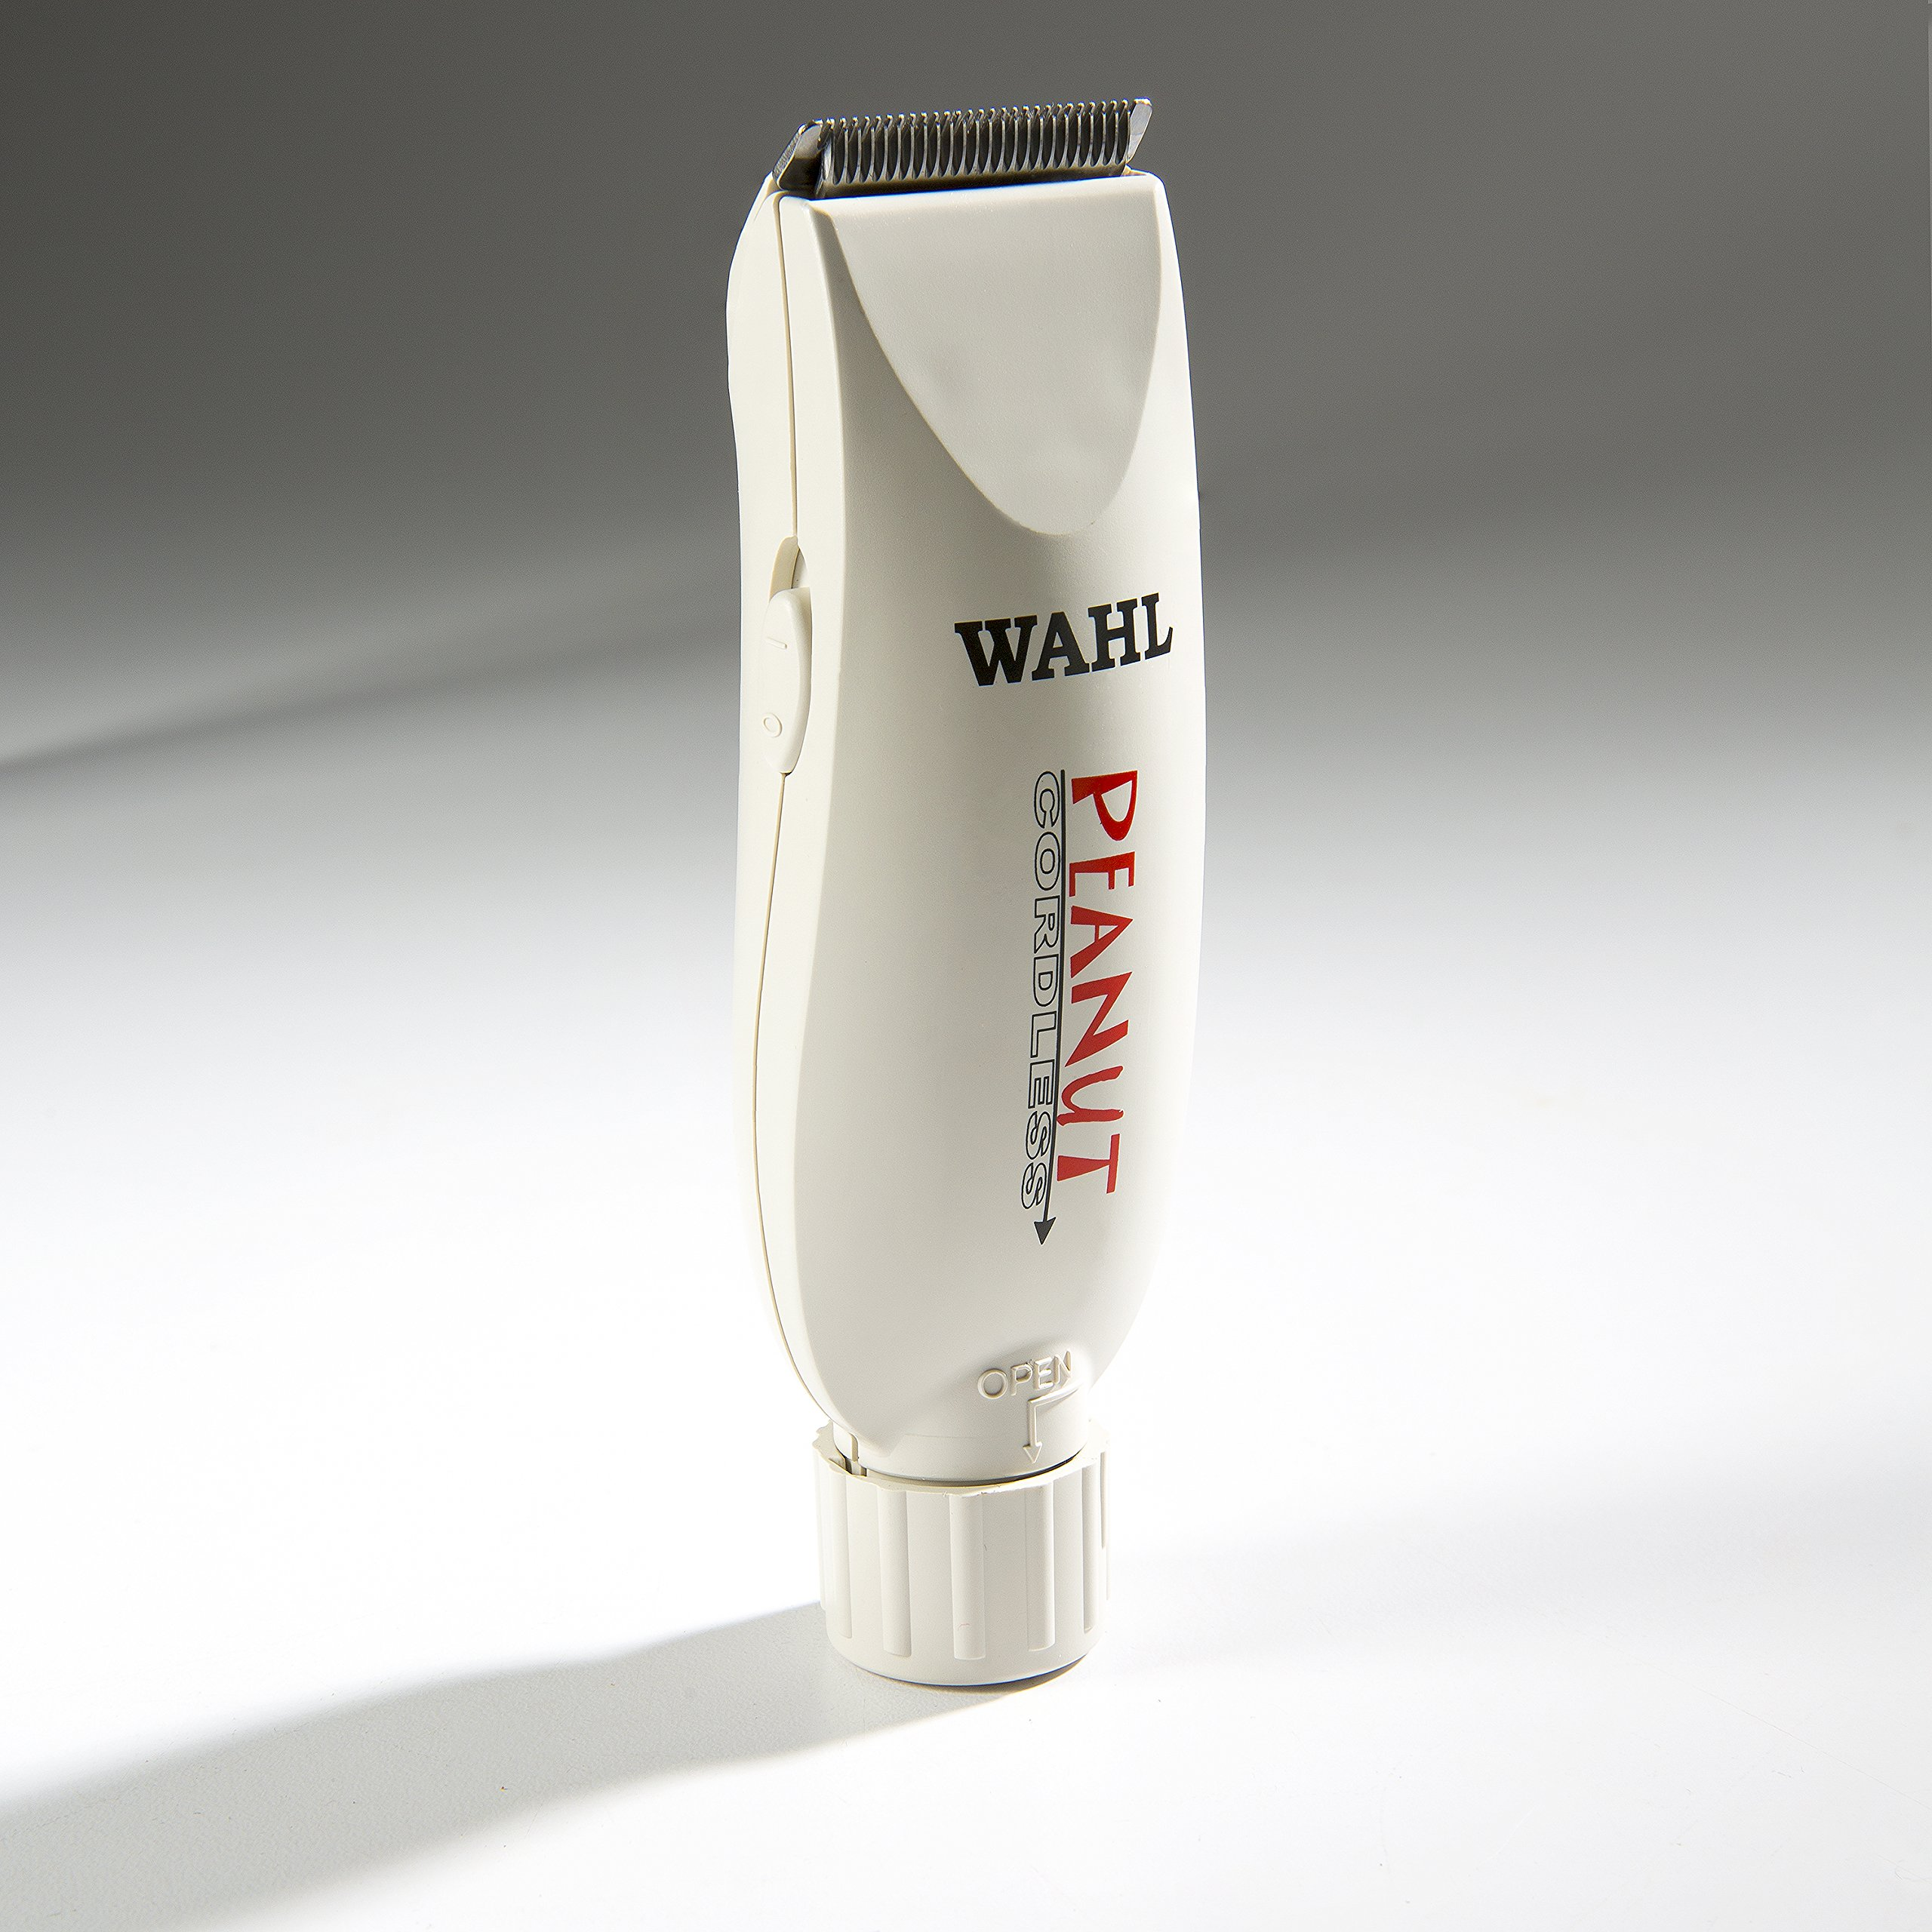 Wahl Professional Peanut Cordless Clipper/Trimmer #8663, White - Great On-the-Go Trimmer for Barbers and Stylists - Powerful Rotary Motor by Wahl Professional (Image #5)